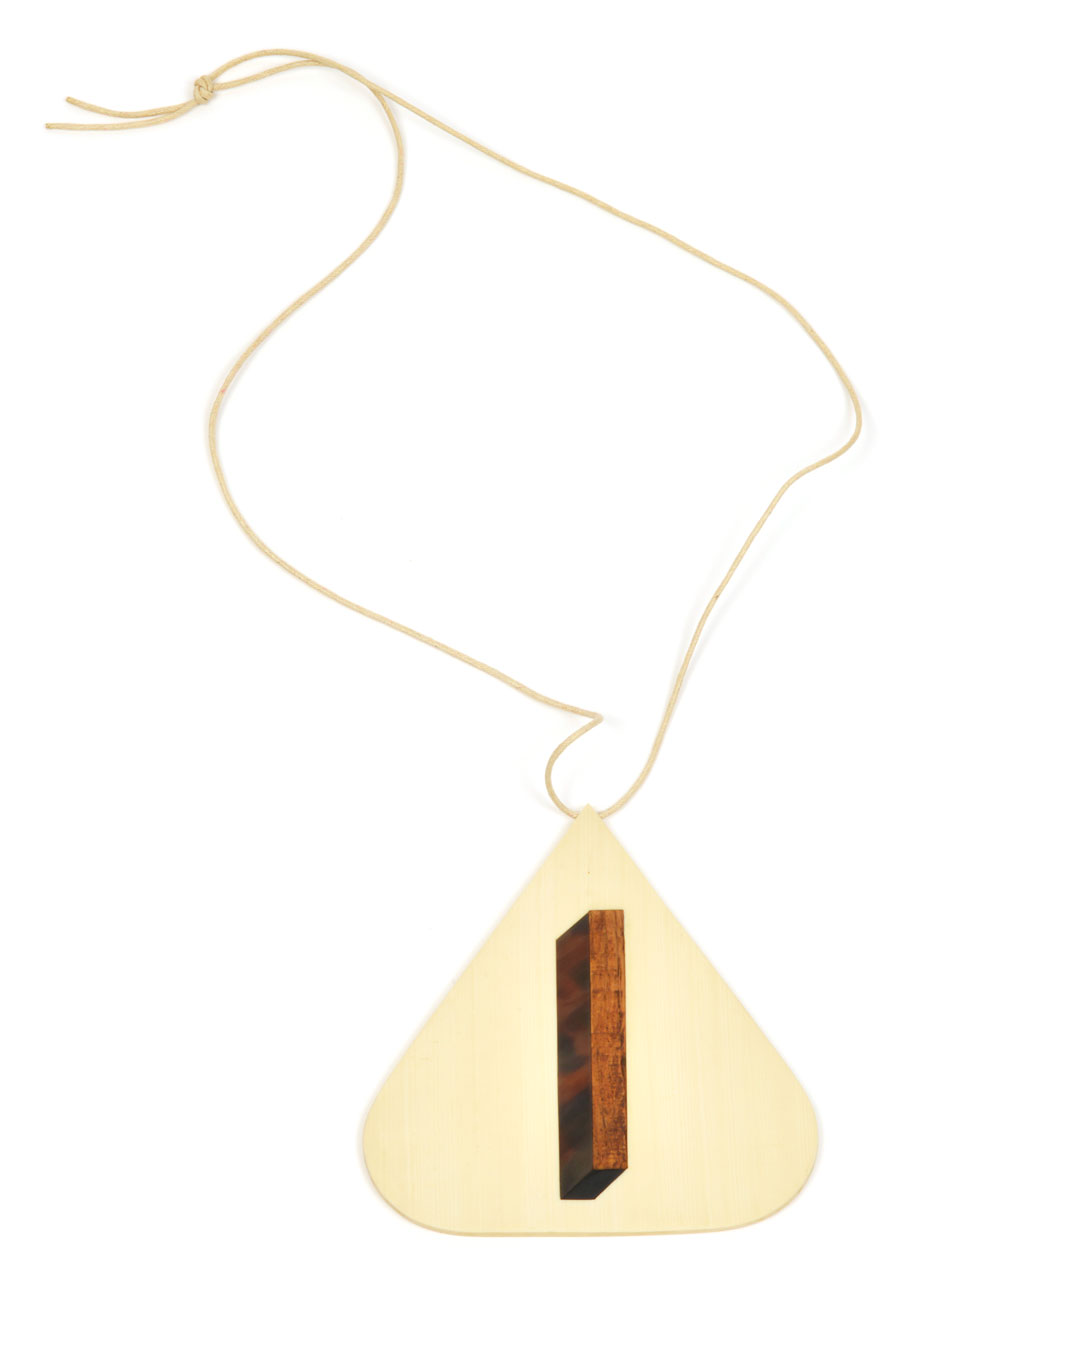 Julia Walter, Box 2, 2014, pendant; Galalith, oak wood, cotton string, 130 x 130 x 5 mm, €1980